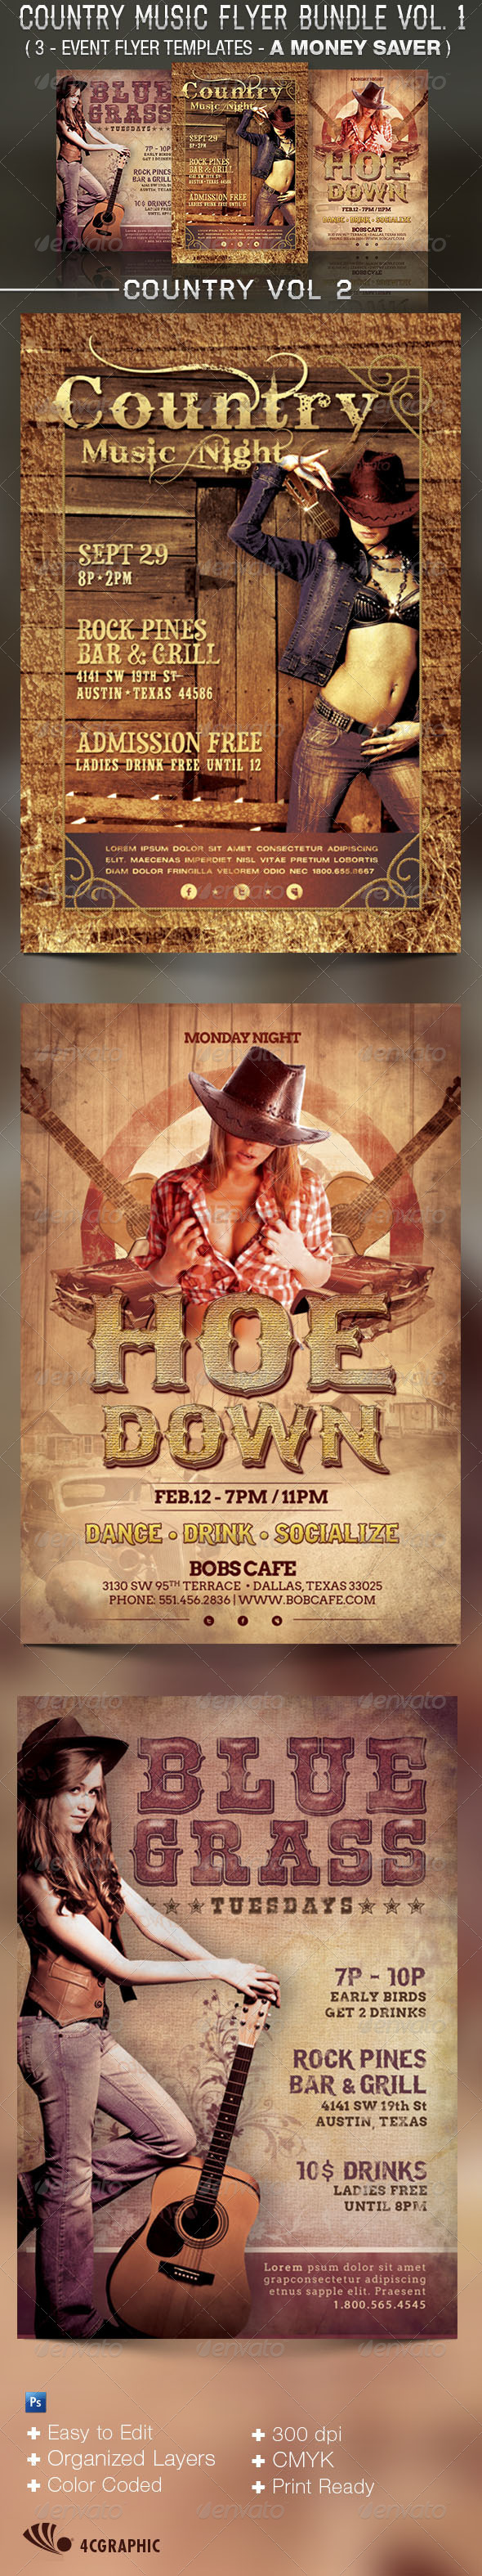 Country Music Flyer Templates Bundle Vol 2 - Flyers Print Templates